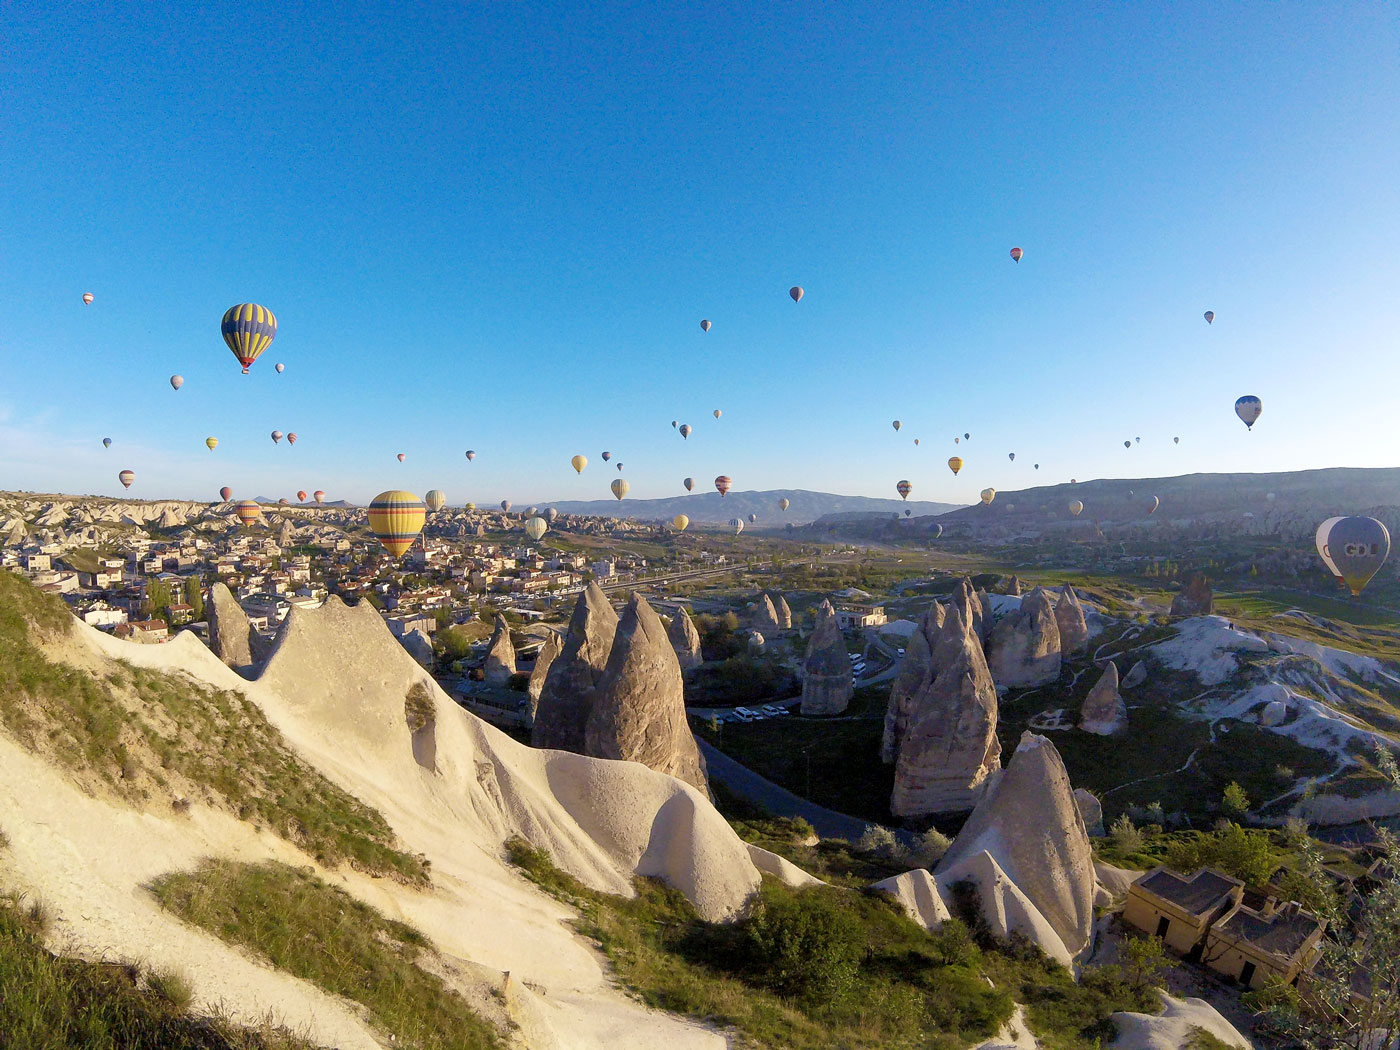 Turkey by bike, balloons in Goreme. Turquey Cycling, hot air balloons at Göreme.